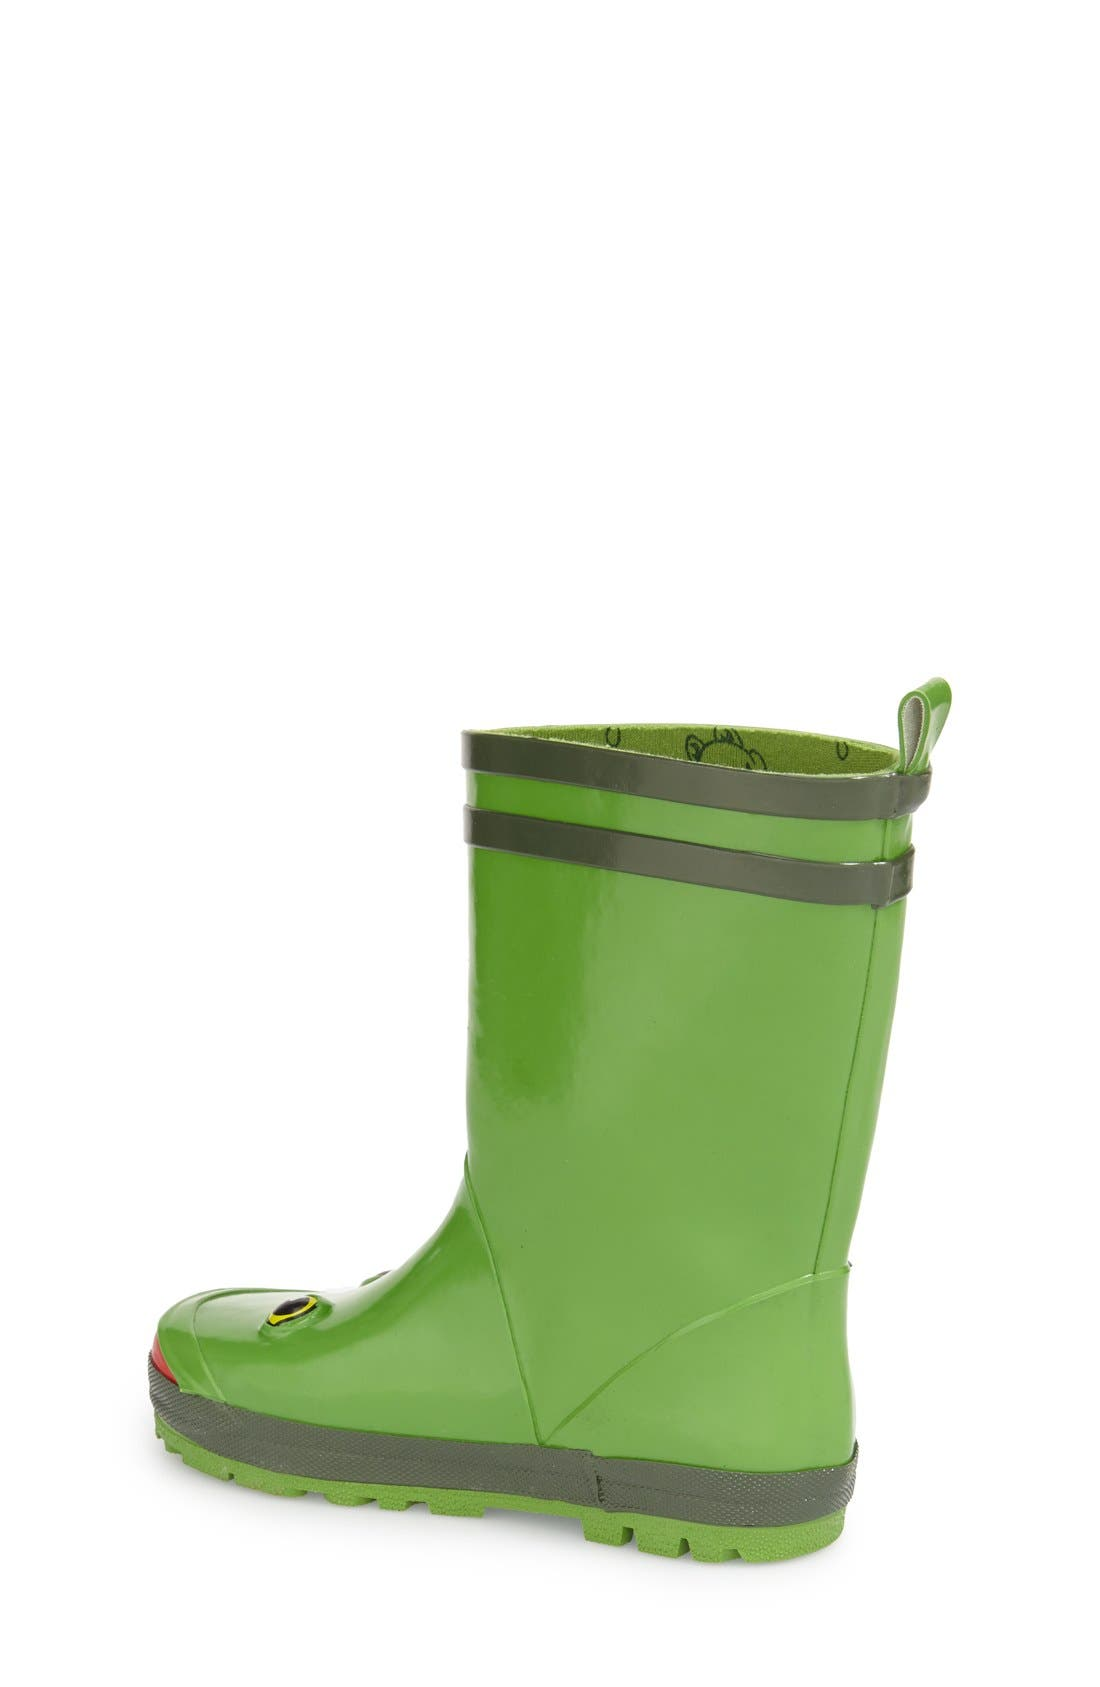 'Frog' Waterproof Rain Boot,                             Alternate thumbnail 2, color,                             300